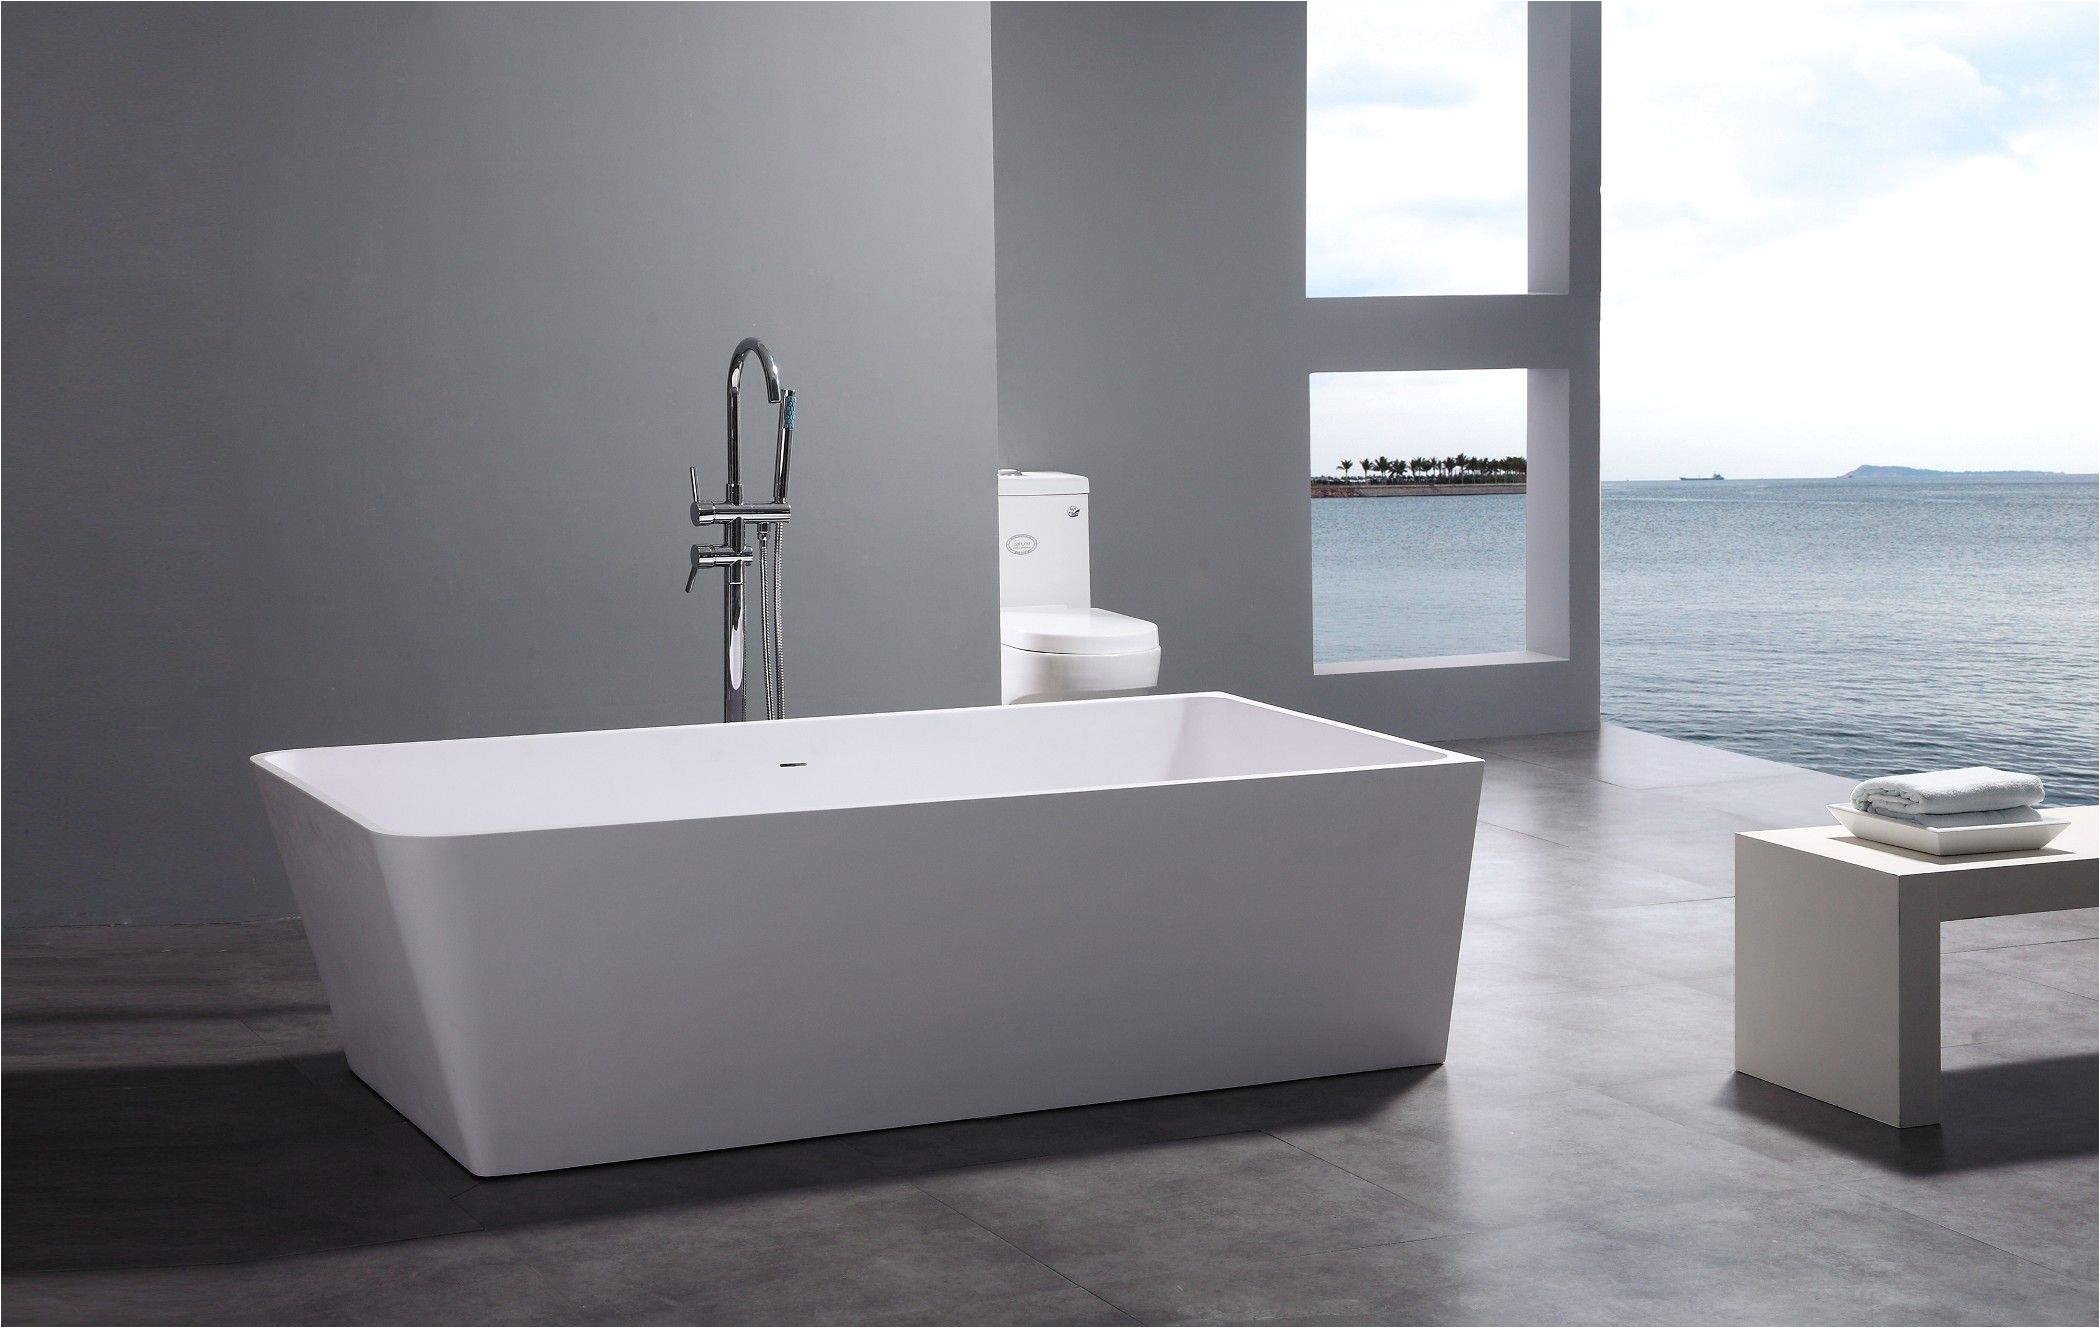 What are Modern Bathtubs Made Of Leona Freestanding soaking Tub 71 for the Home